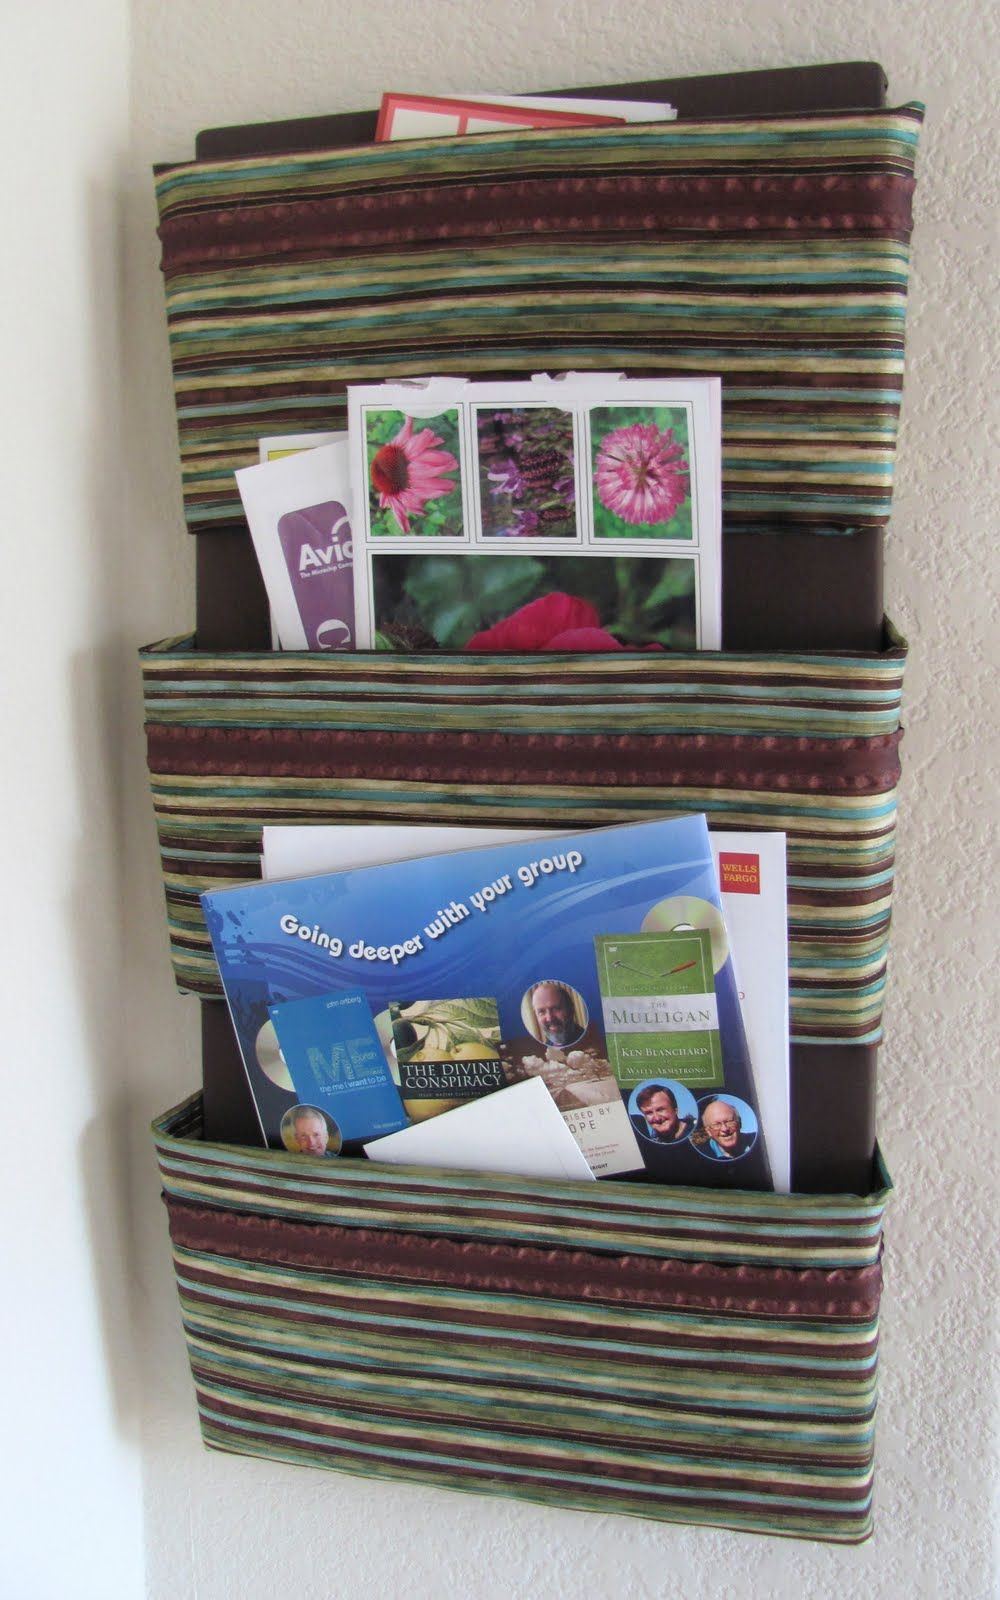 Uncategorized The Fabric Organizer i dont like the fabric but instructions are very helpful helpful